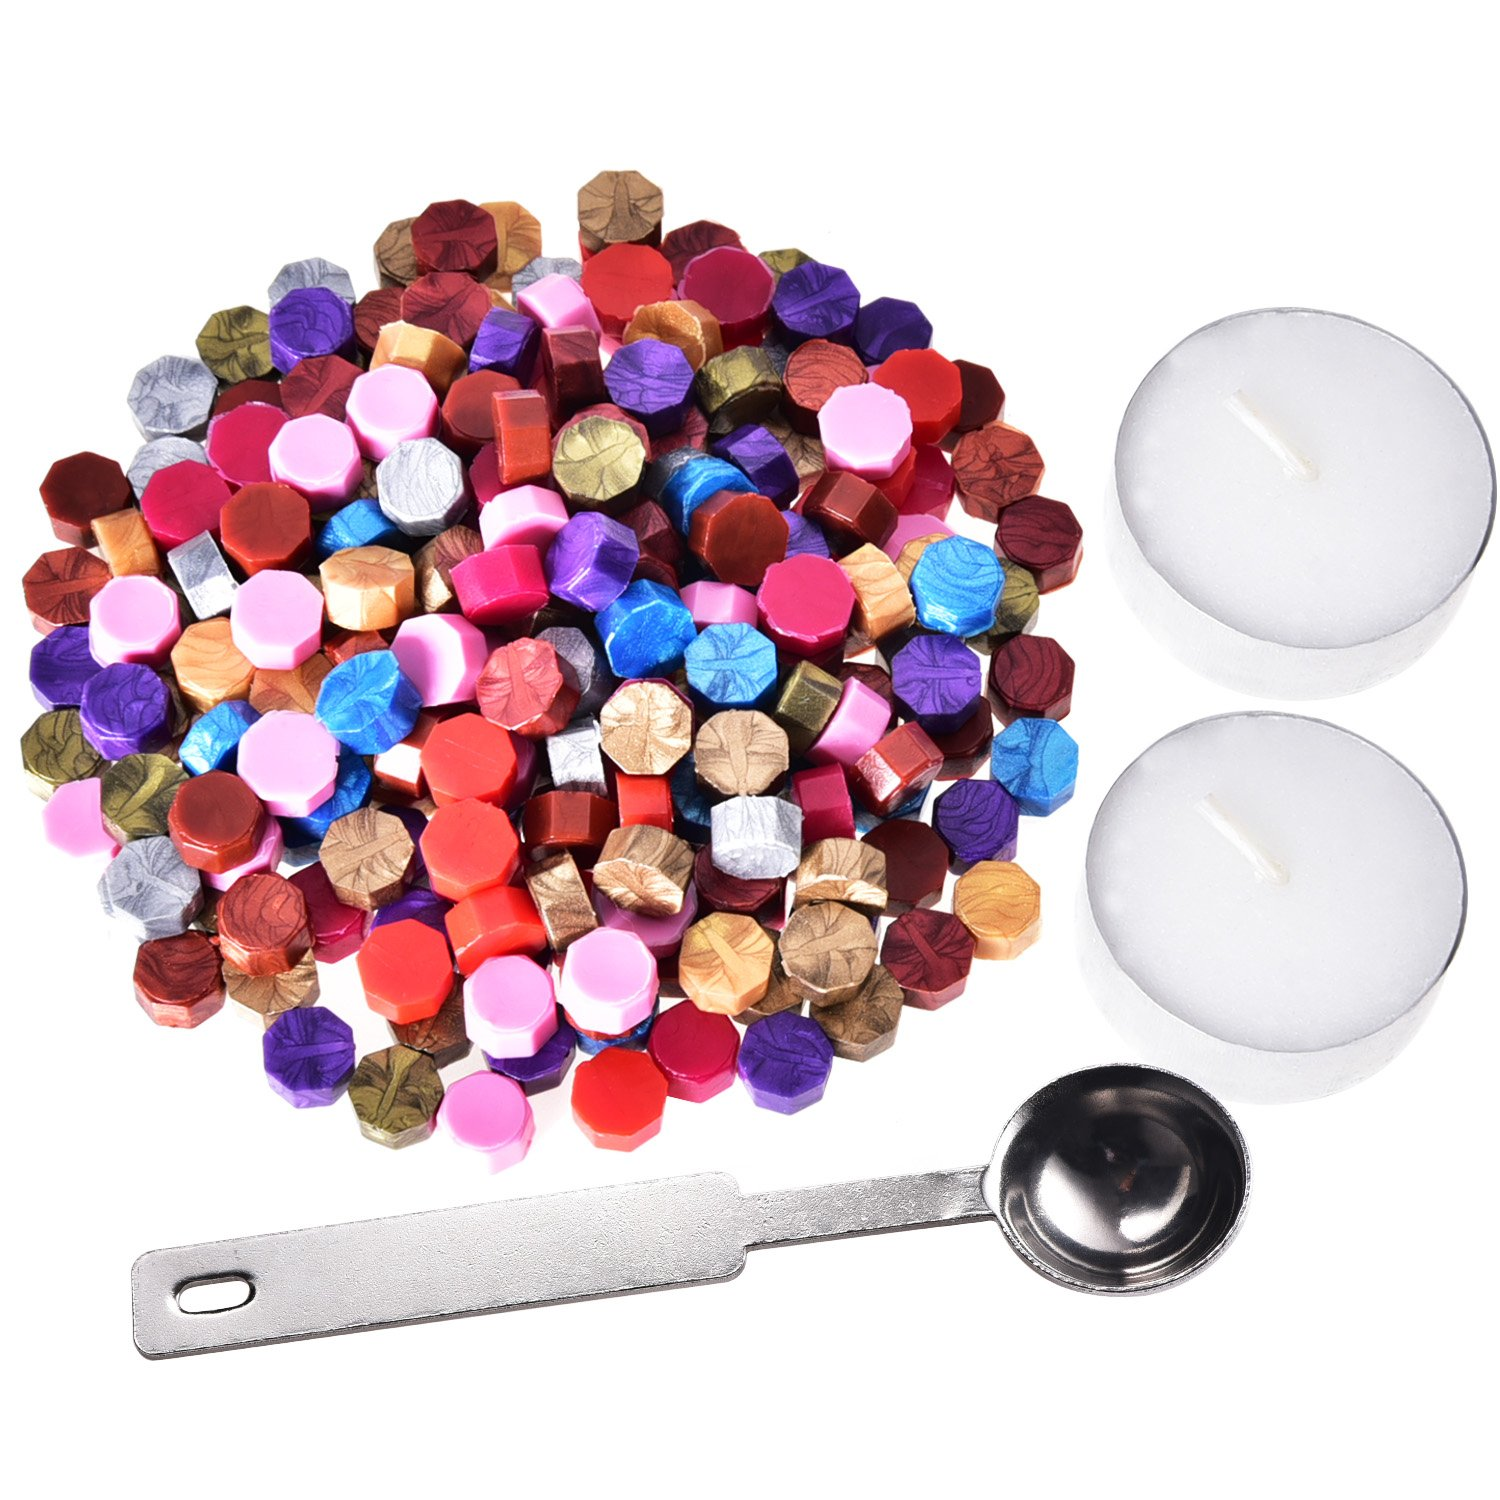 Hestya 230 Pieces Octagon Sealing Wax Beads Sticks with 2 Pieces Tea Candles and 1 Piece Wax Melting Spoon for Wax Stamp Sealing (12 Colors) 4336845593